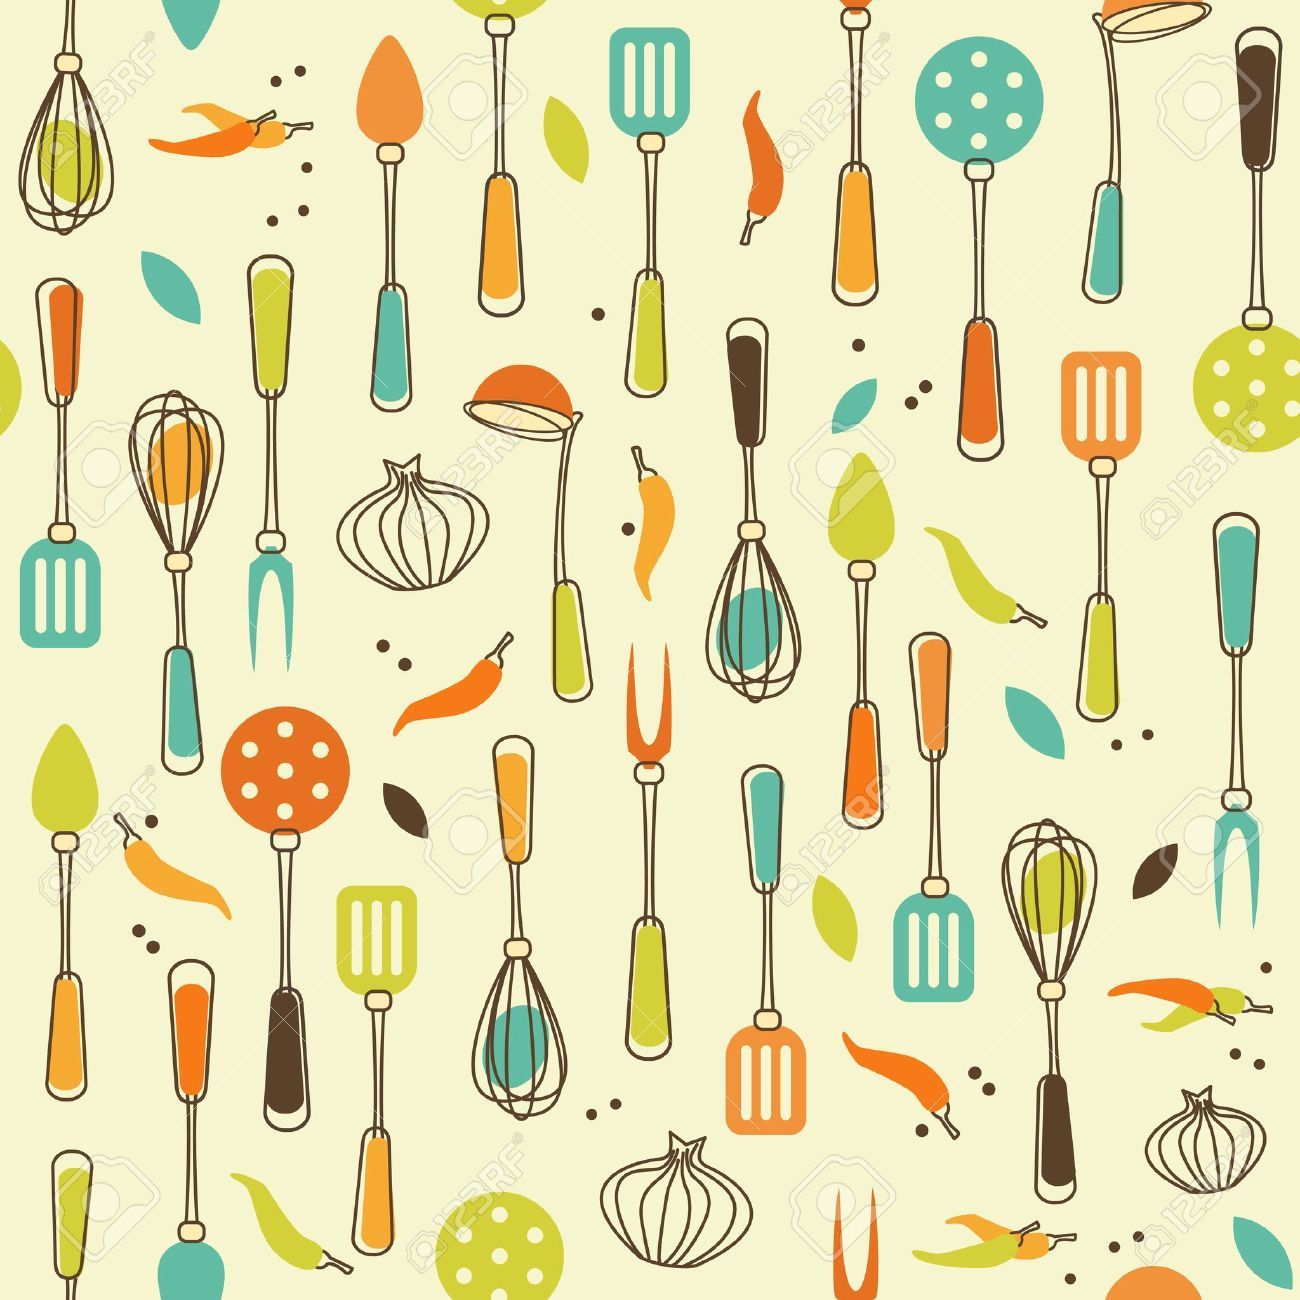 Image result for free hd recipe cooking borders and